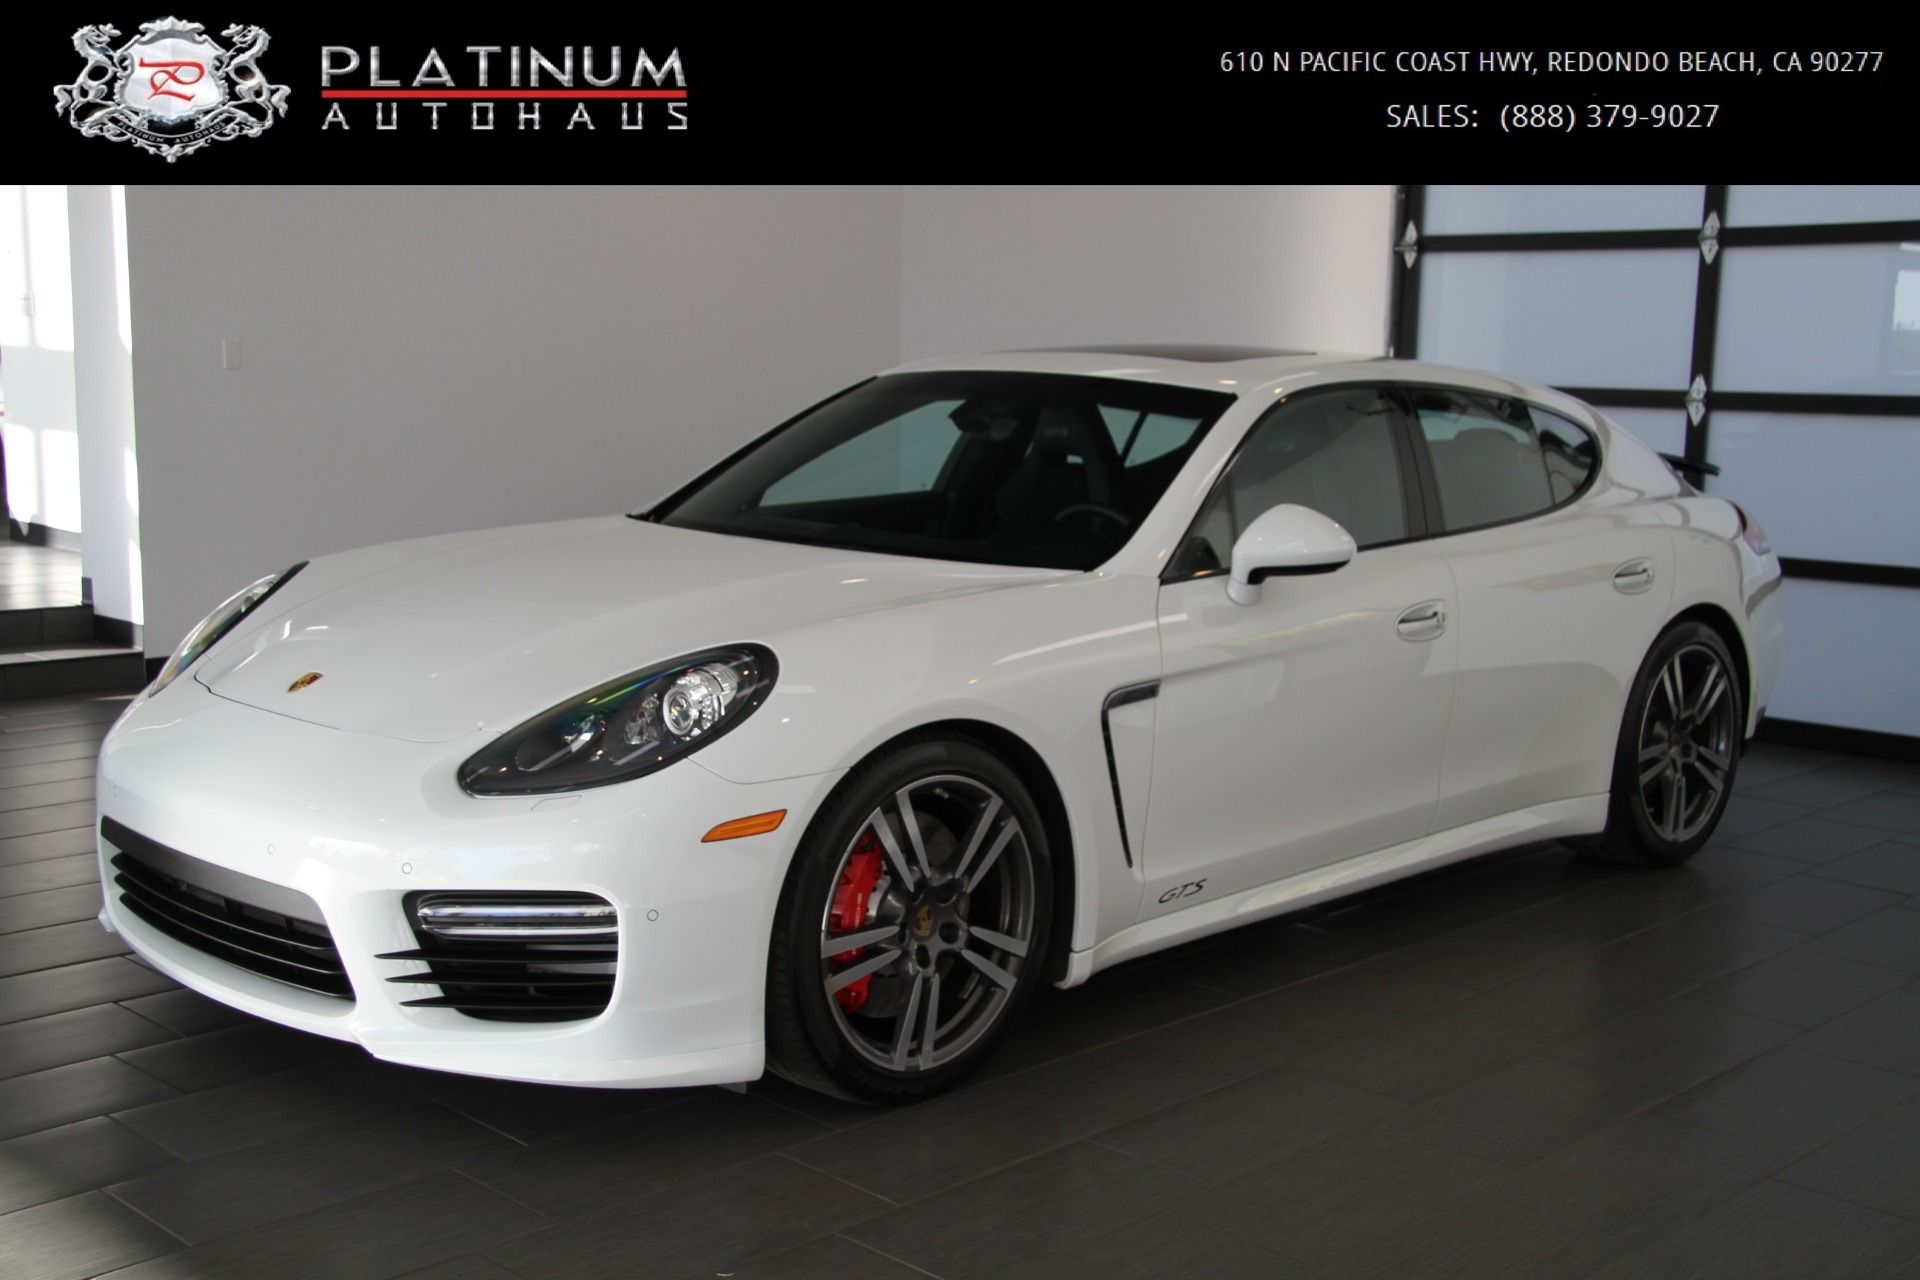 2015 porsche panamera gts msrp 125 125 stock 6109. Black Bedroom Furniture Sets. Home Design Ideas